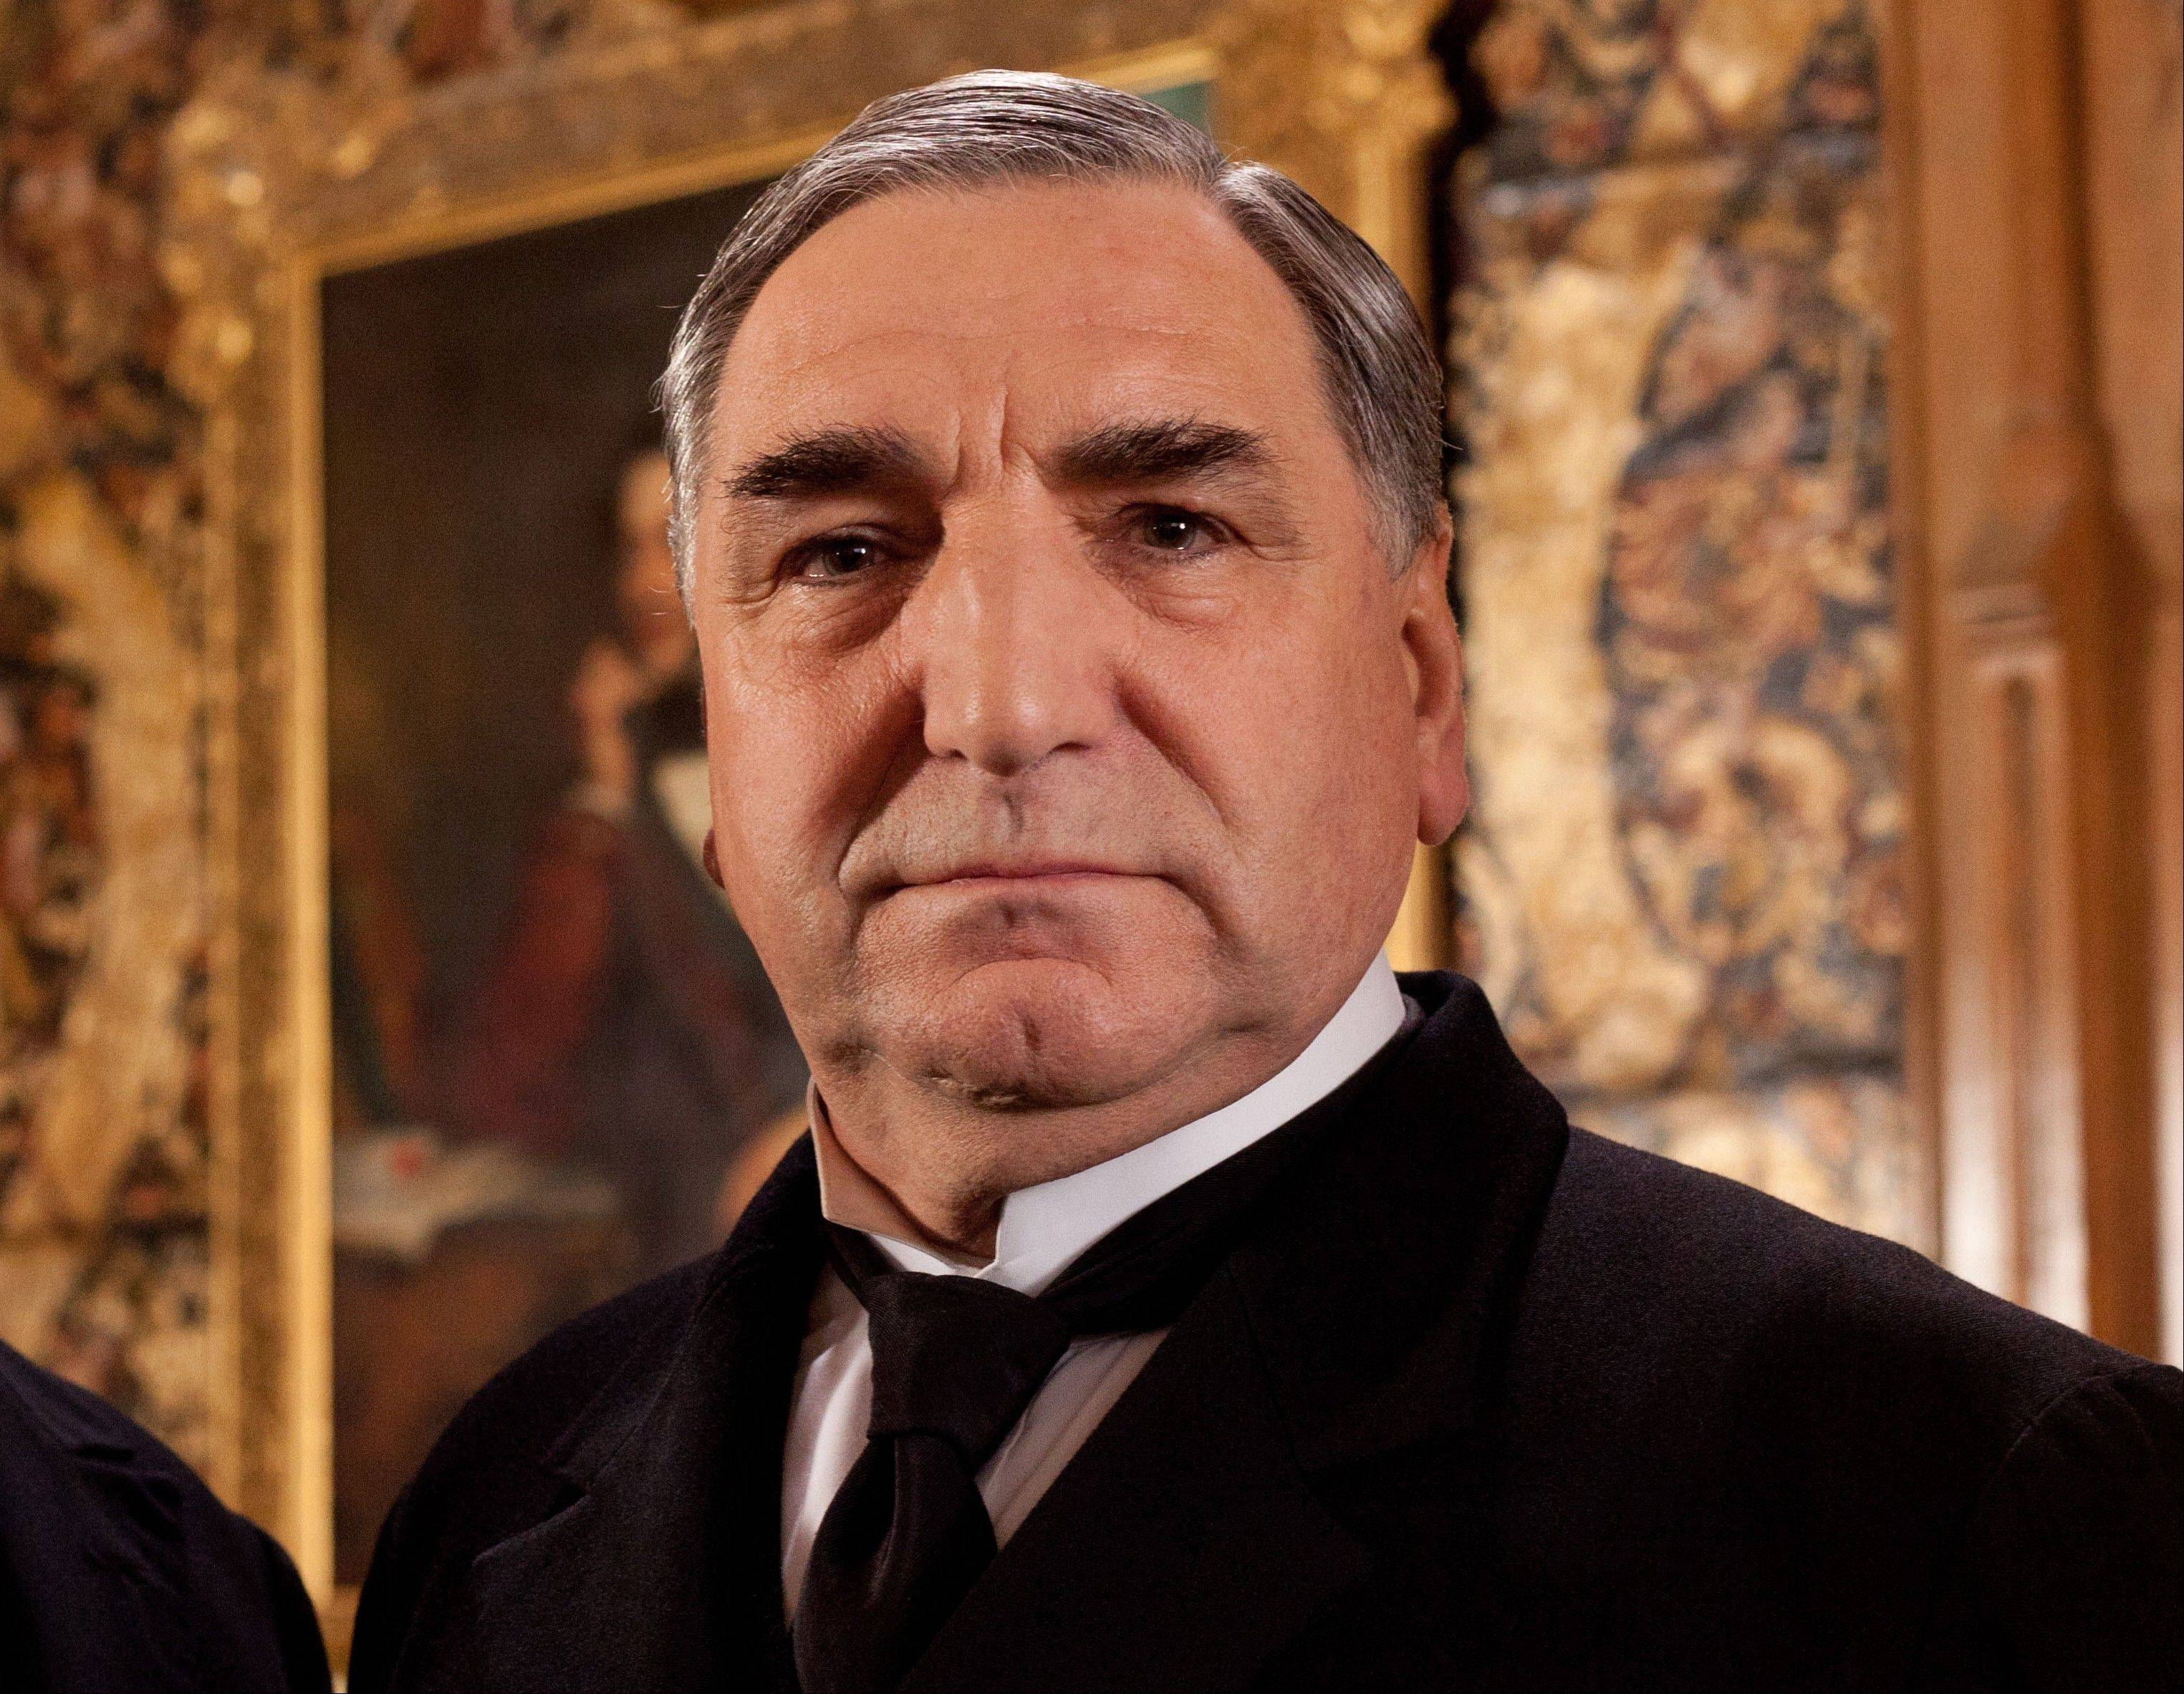 Jim Carter was nominated for an Emmy Award for best supporting actor in a drama series for his role as Mr. Carson in �Downton Abbey.�